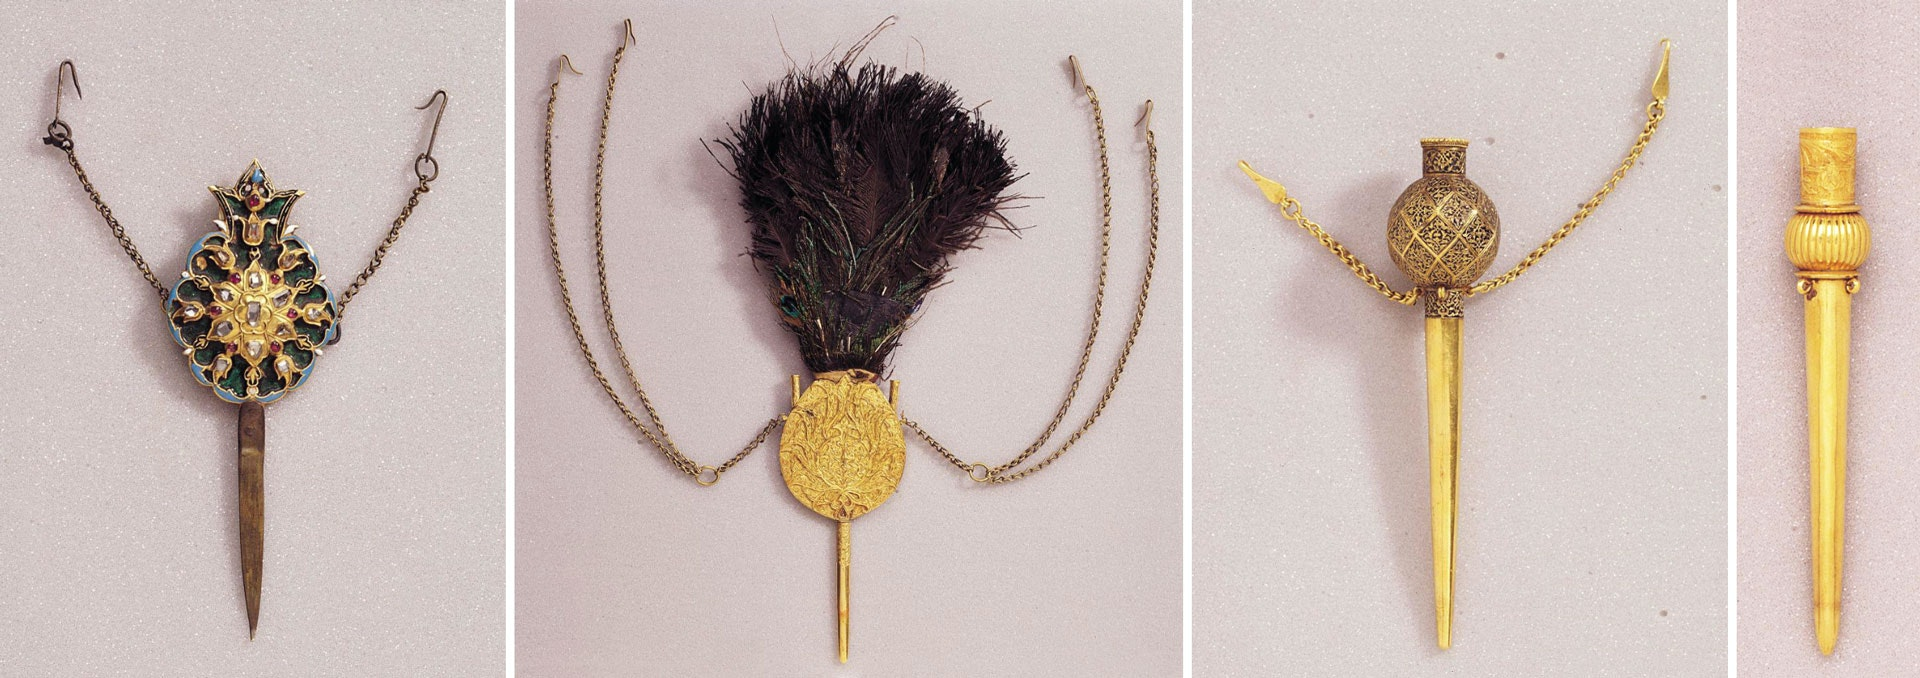 An aigrette is a bundle of ornamental feathers placed in a holder and attached to headgear such as a turban